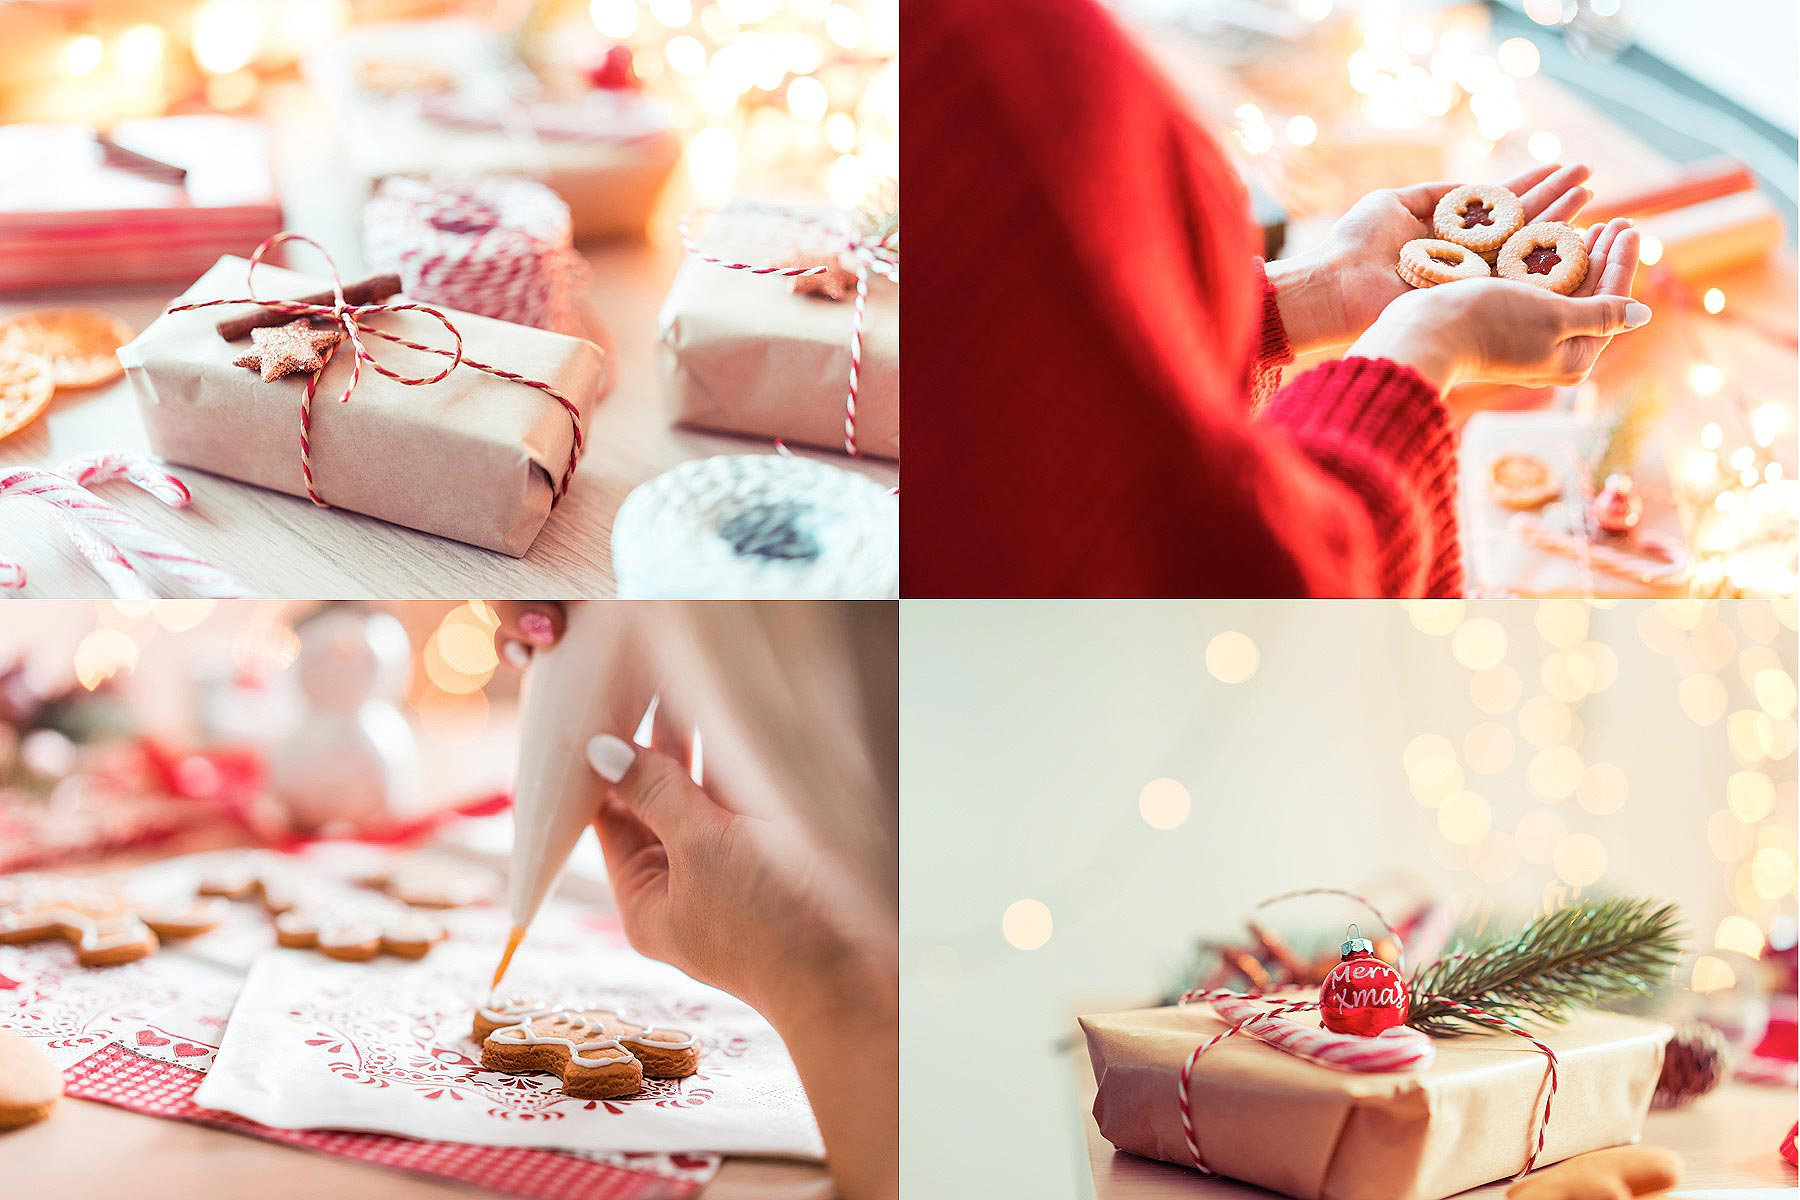 Christmas stock photos for download